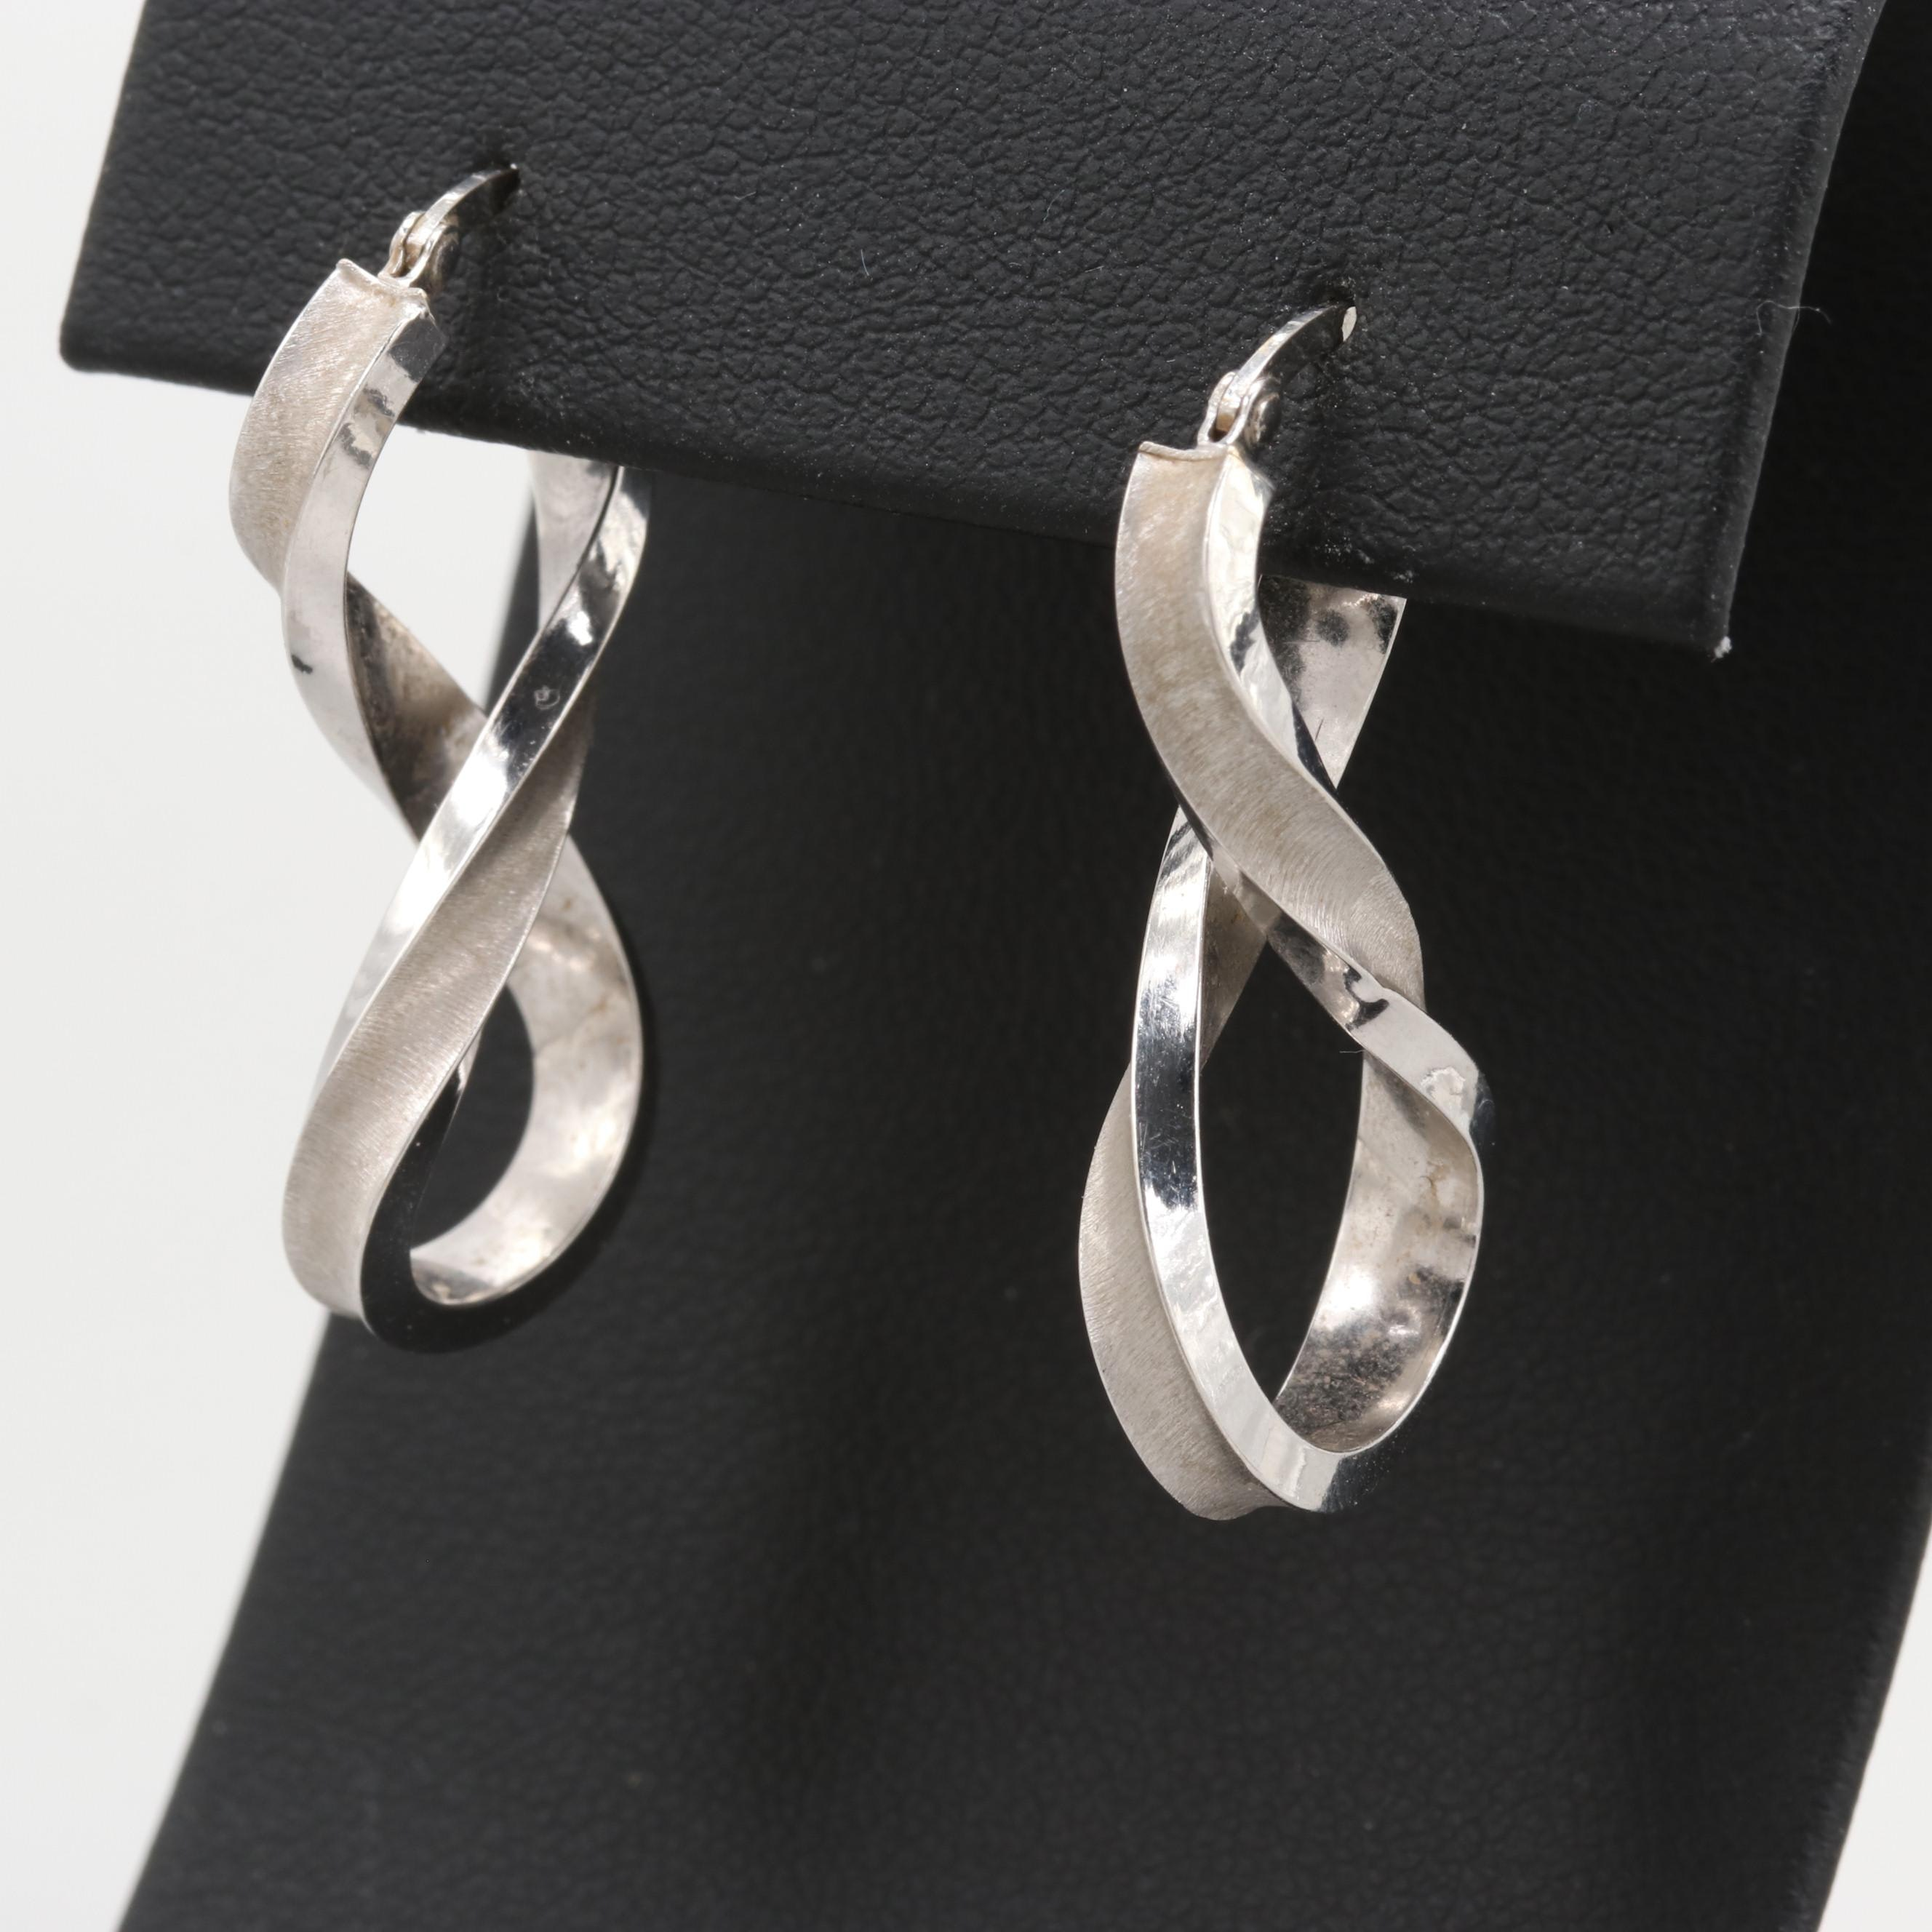 14K White Gold Brushed and Bright Polished Drop Earrings